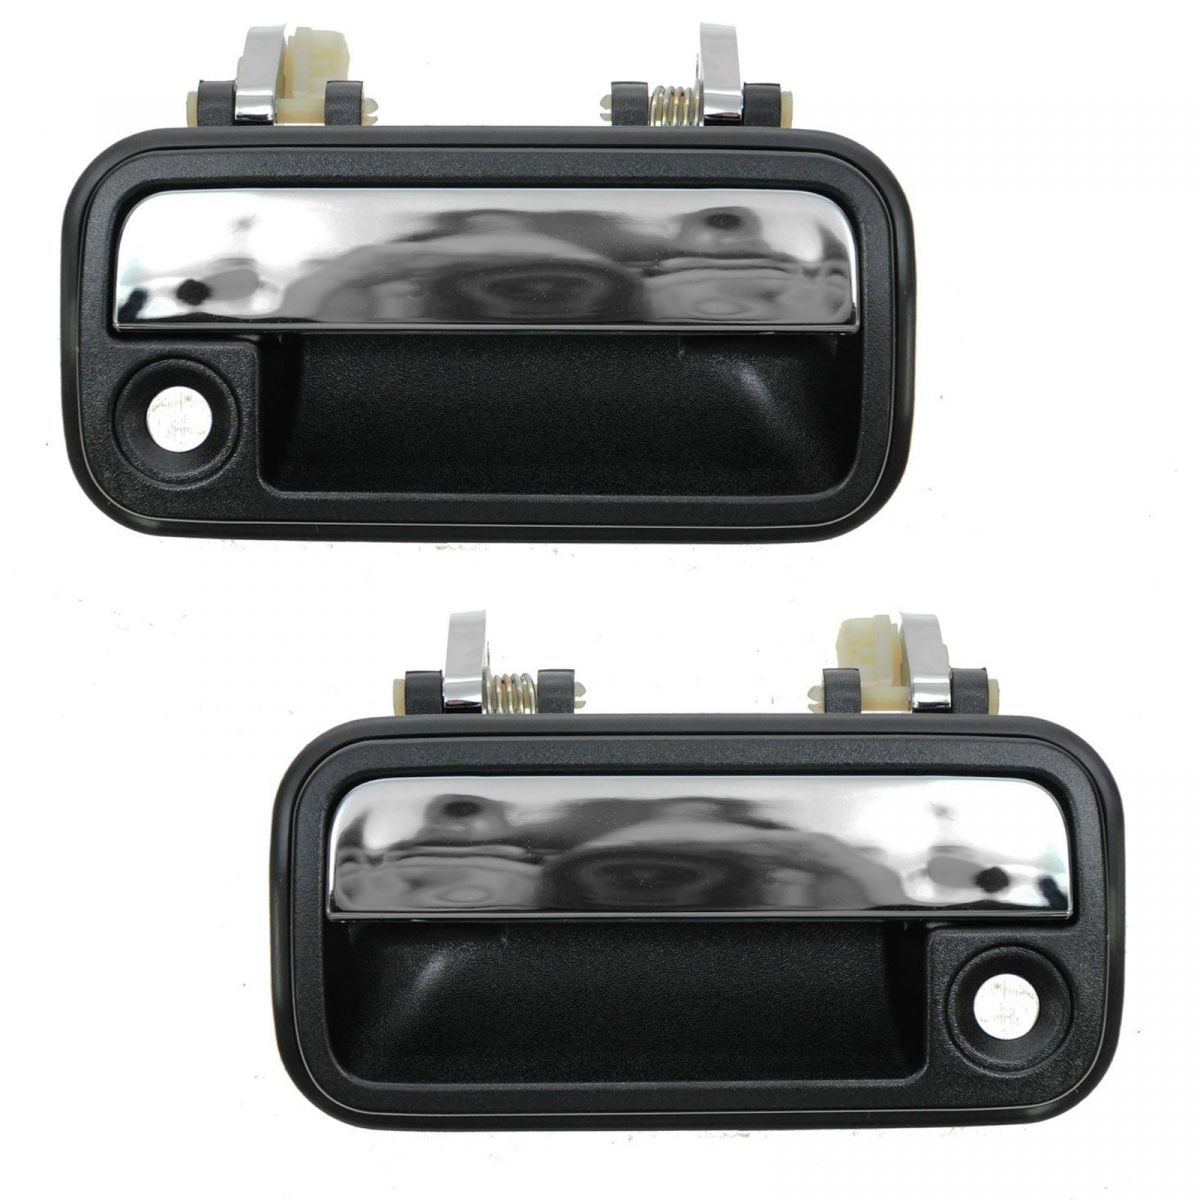 Black /& Chrome Exterior Front Outside Door Handle Pair Set for 88-92 Mazda 626